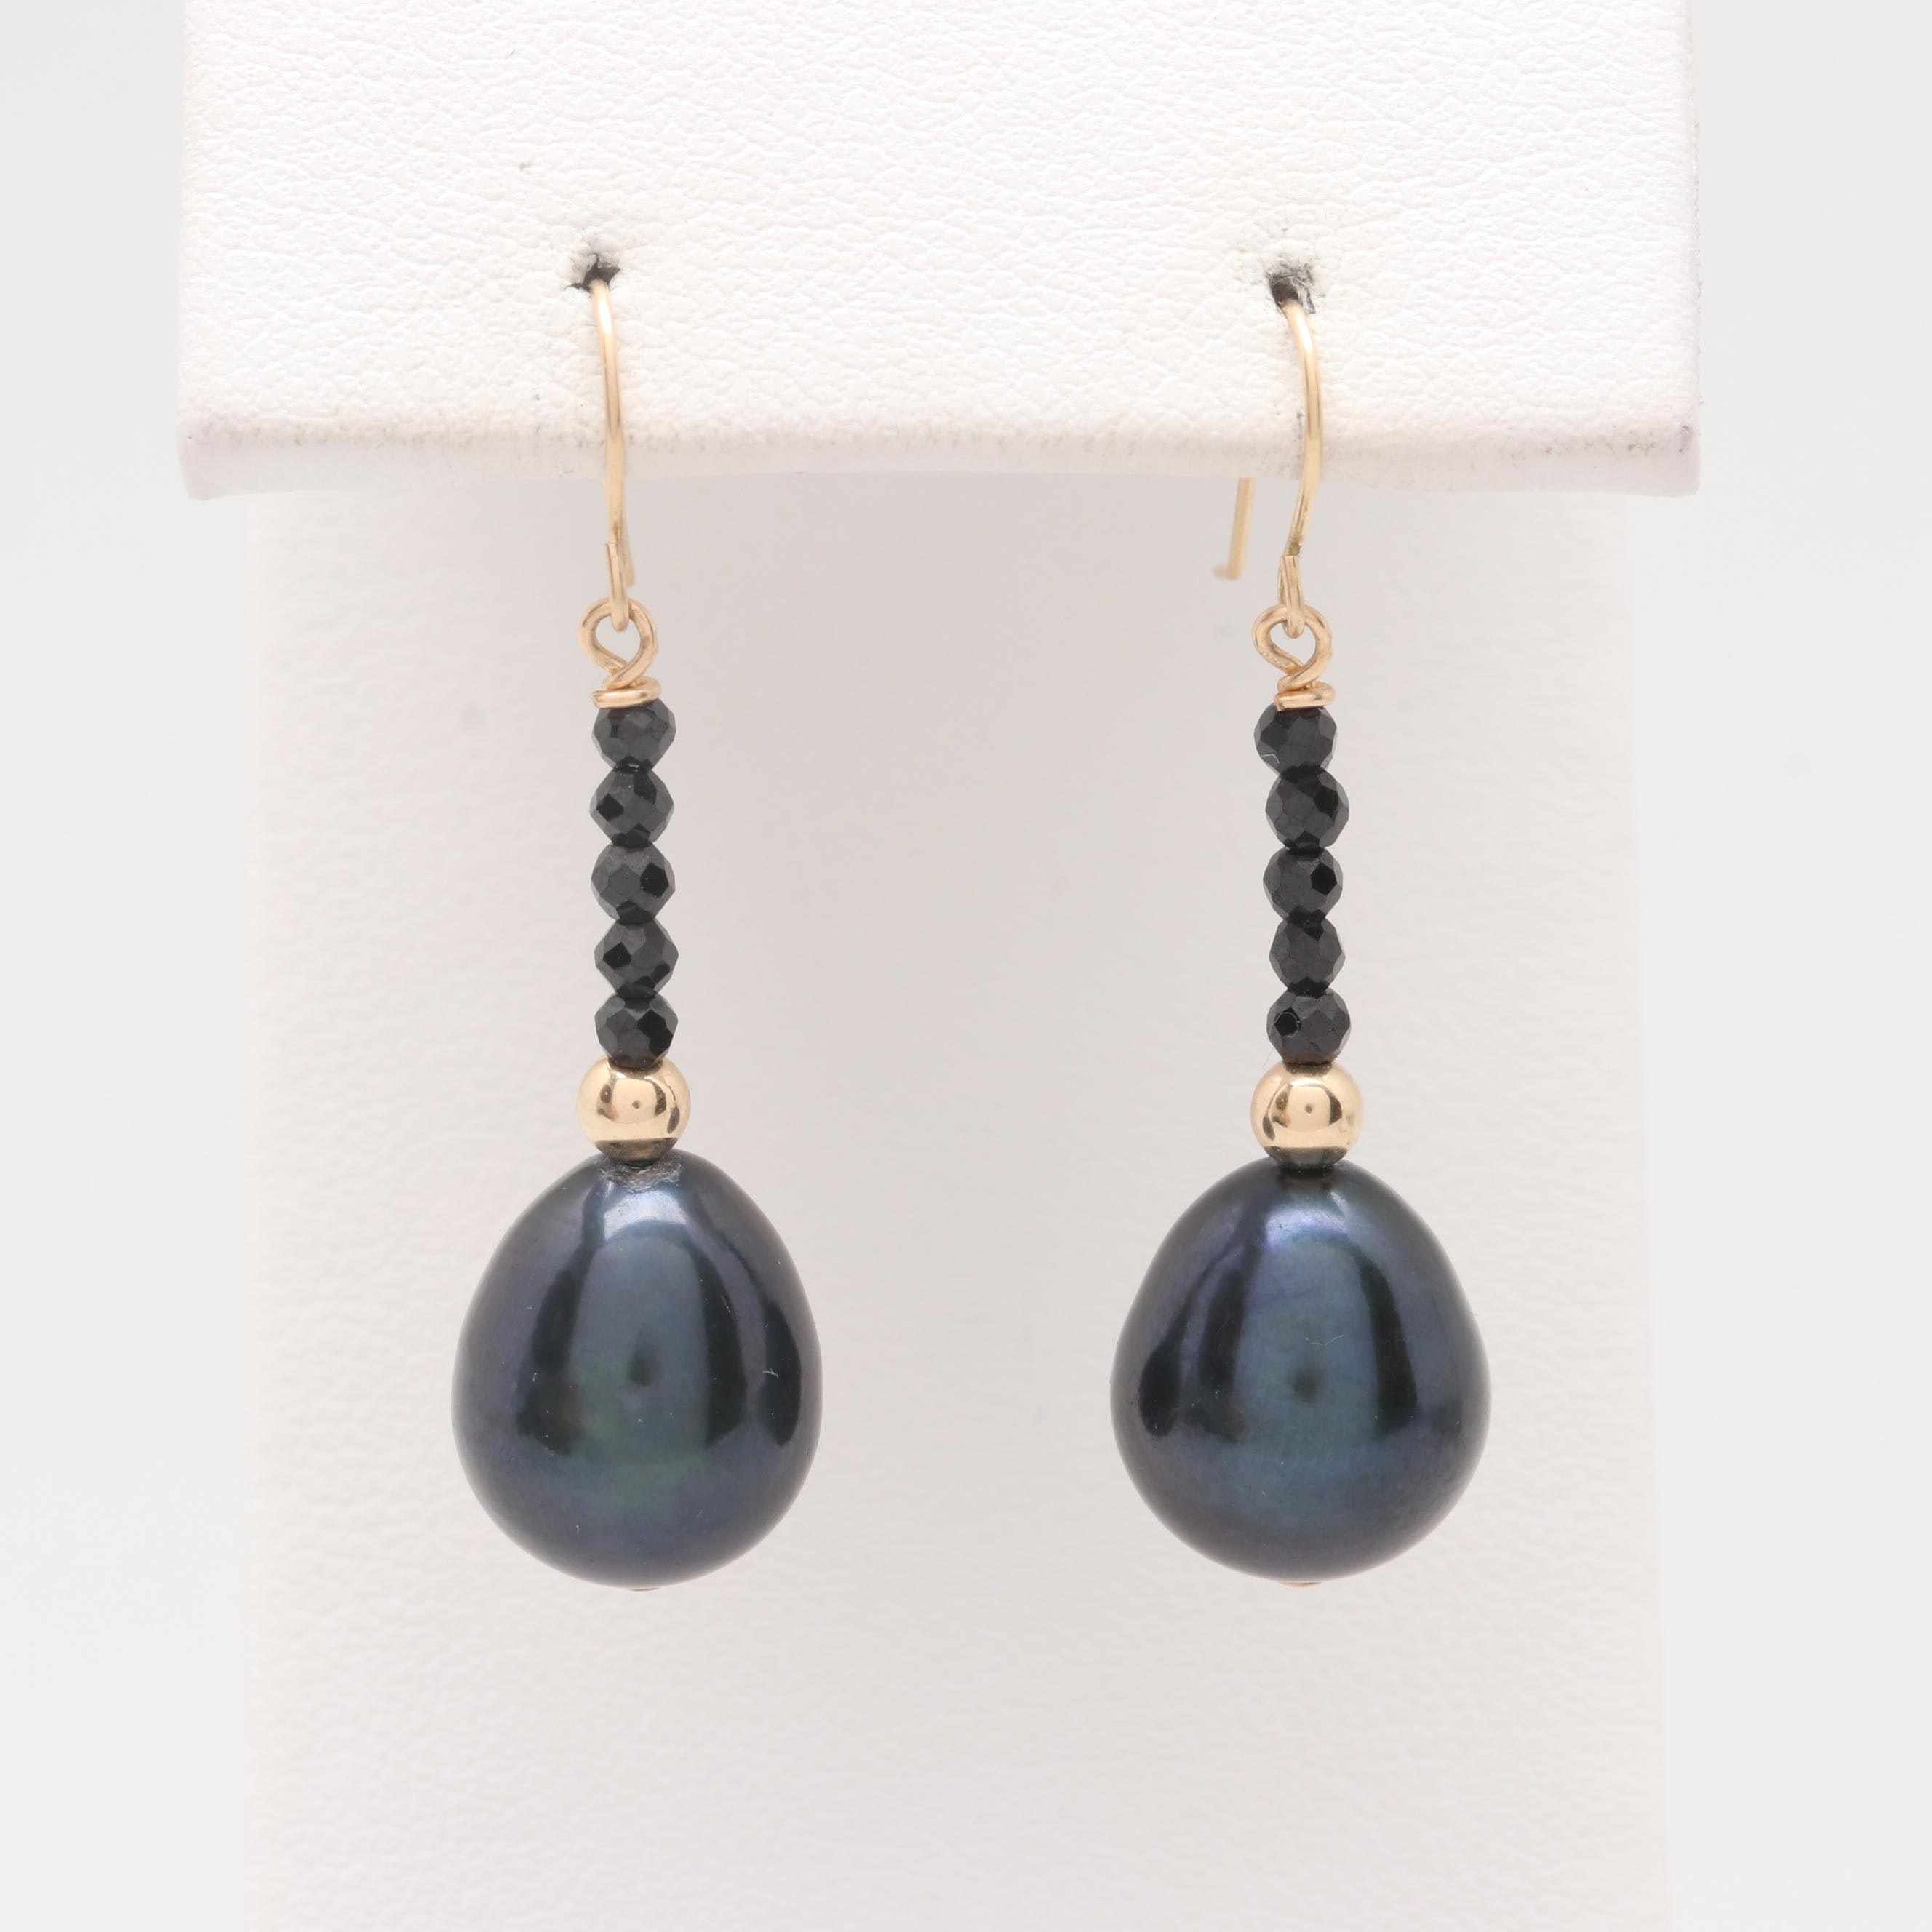 14K Yellow Gold Black Cultured Pearl and Black Spinel Earrings